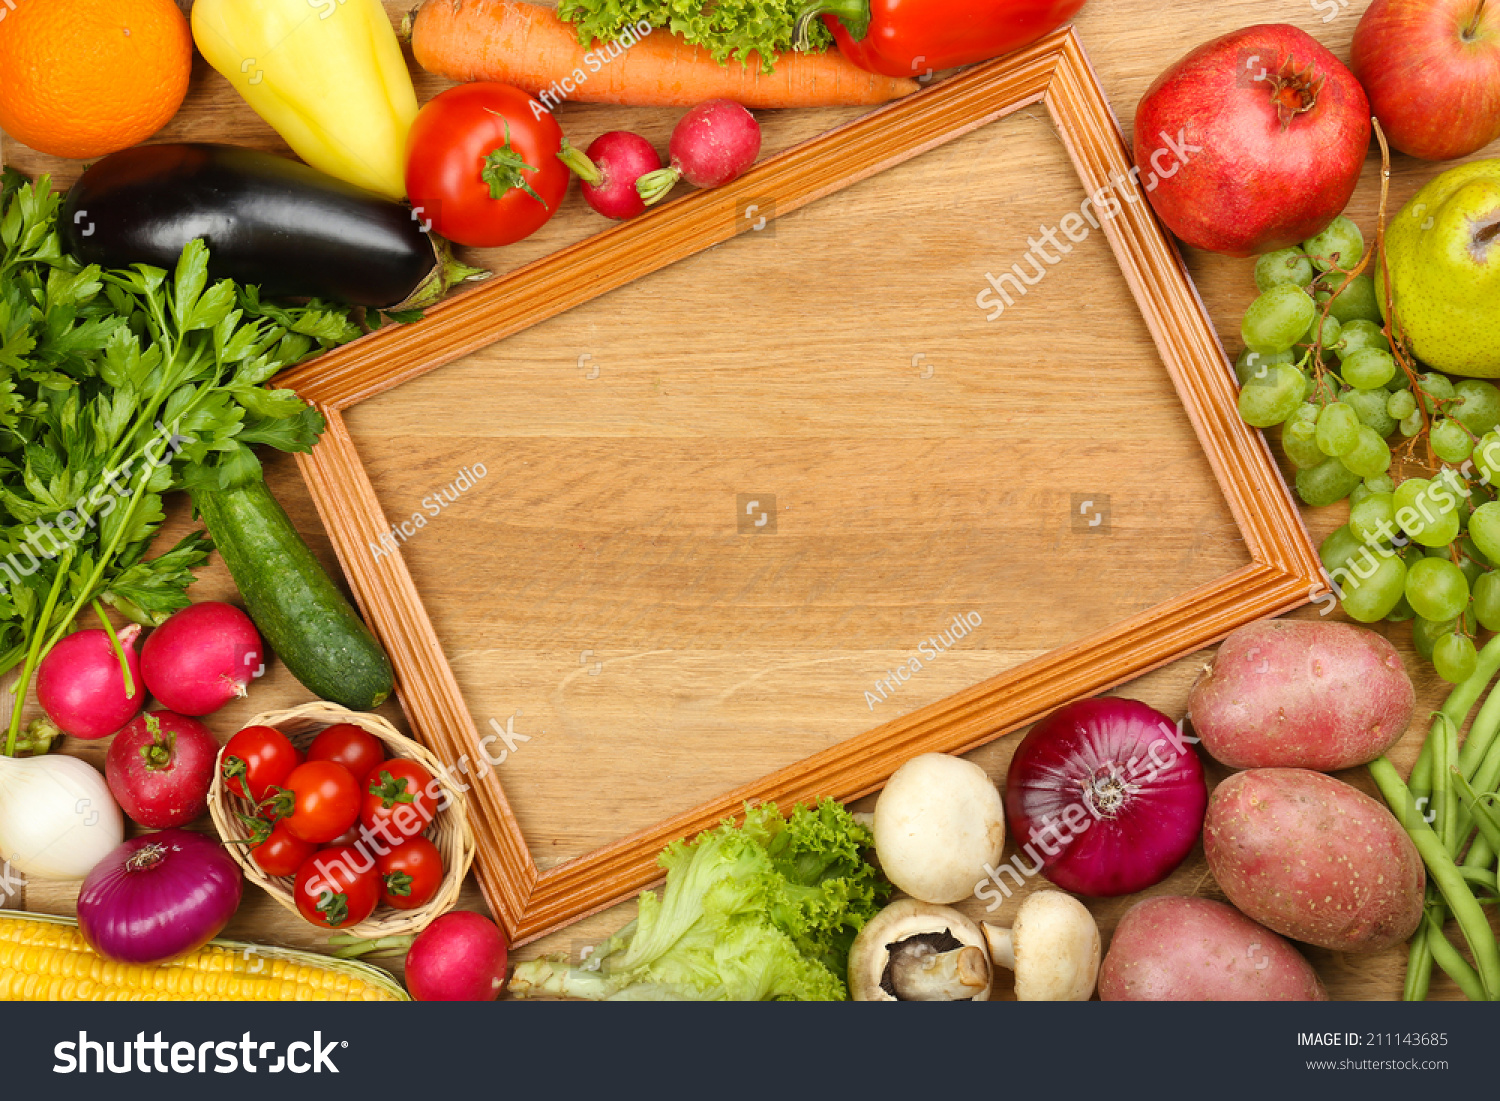 Summer Frame Fresh Organic Vegetables Fruits Stock Photo ...